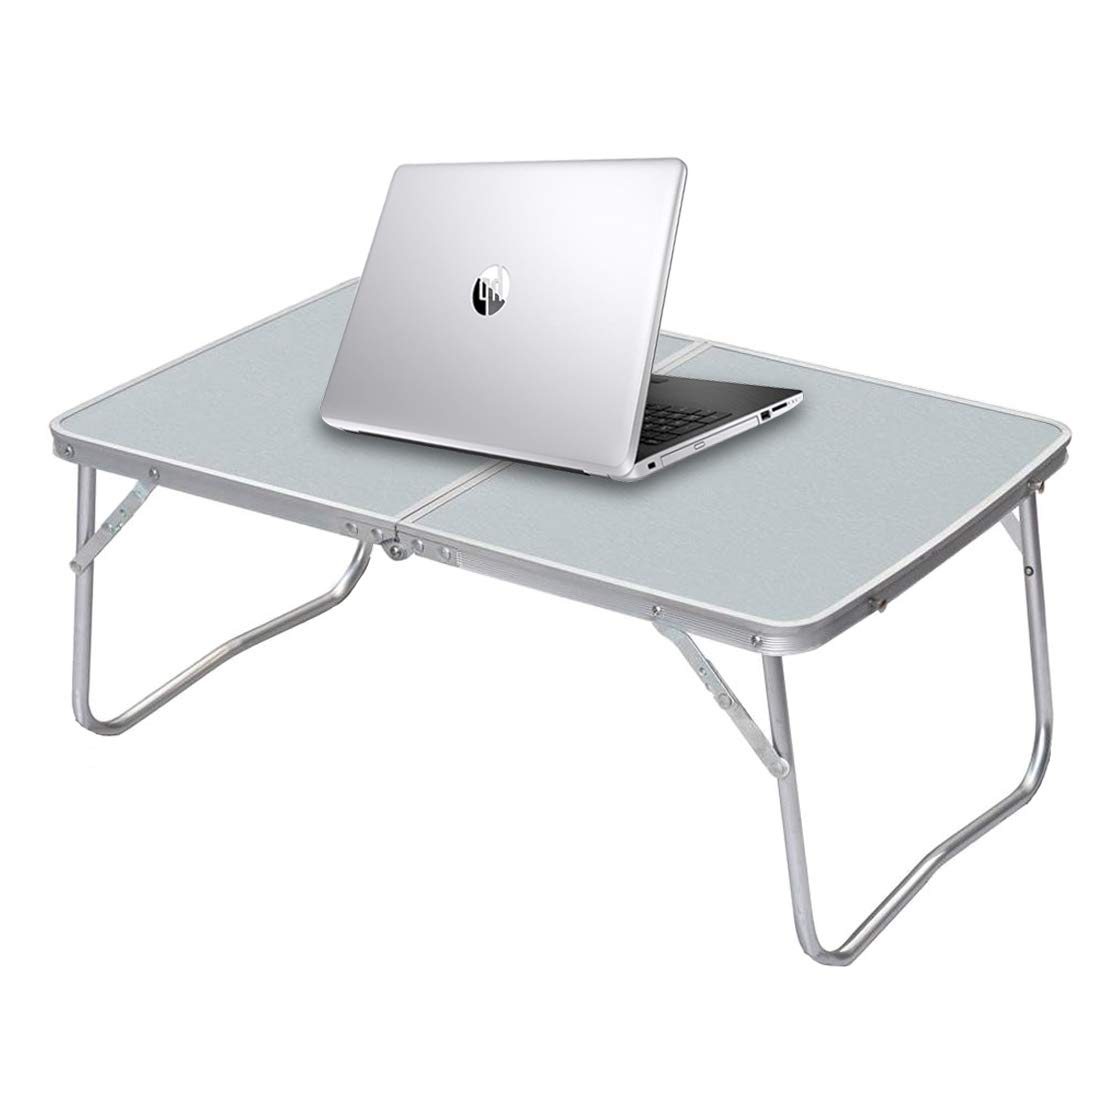 Foldable Laptop Table for Bed, Folding Lap Desk Breakfast Serving Tray, Notebook Stand Reading Holder for Couch Floor, Folds in Half w' Inner Storage Space with Aluminium Alloy Legs, Silver